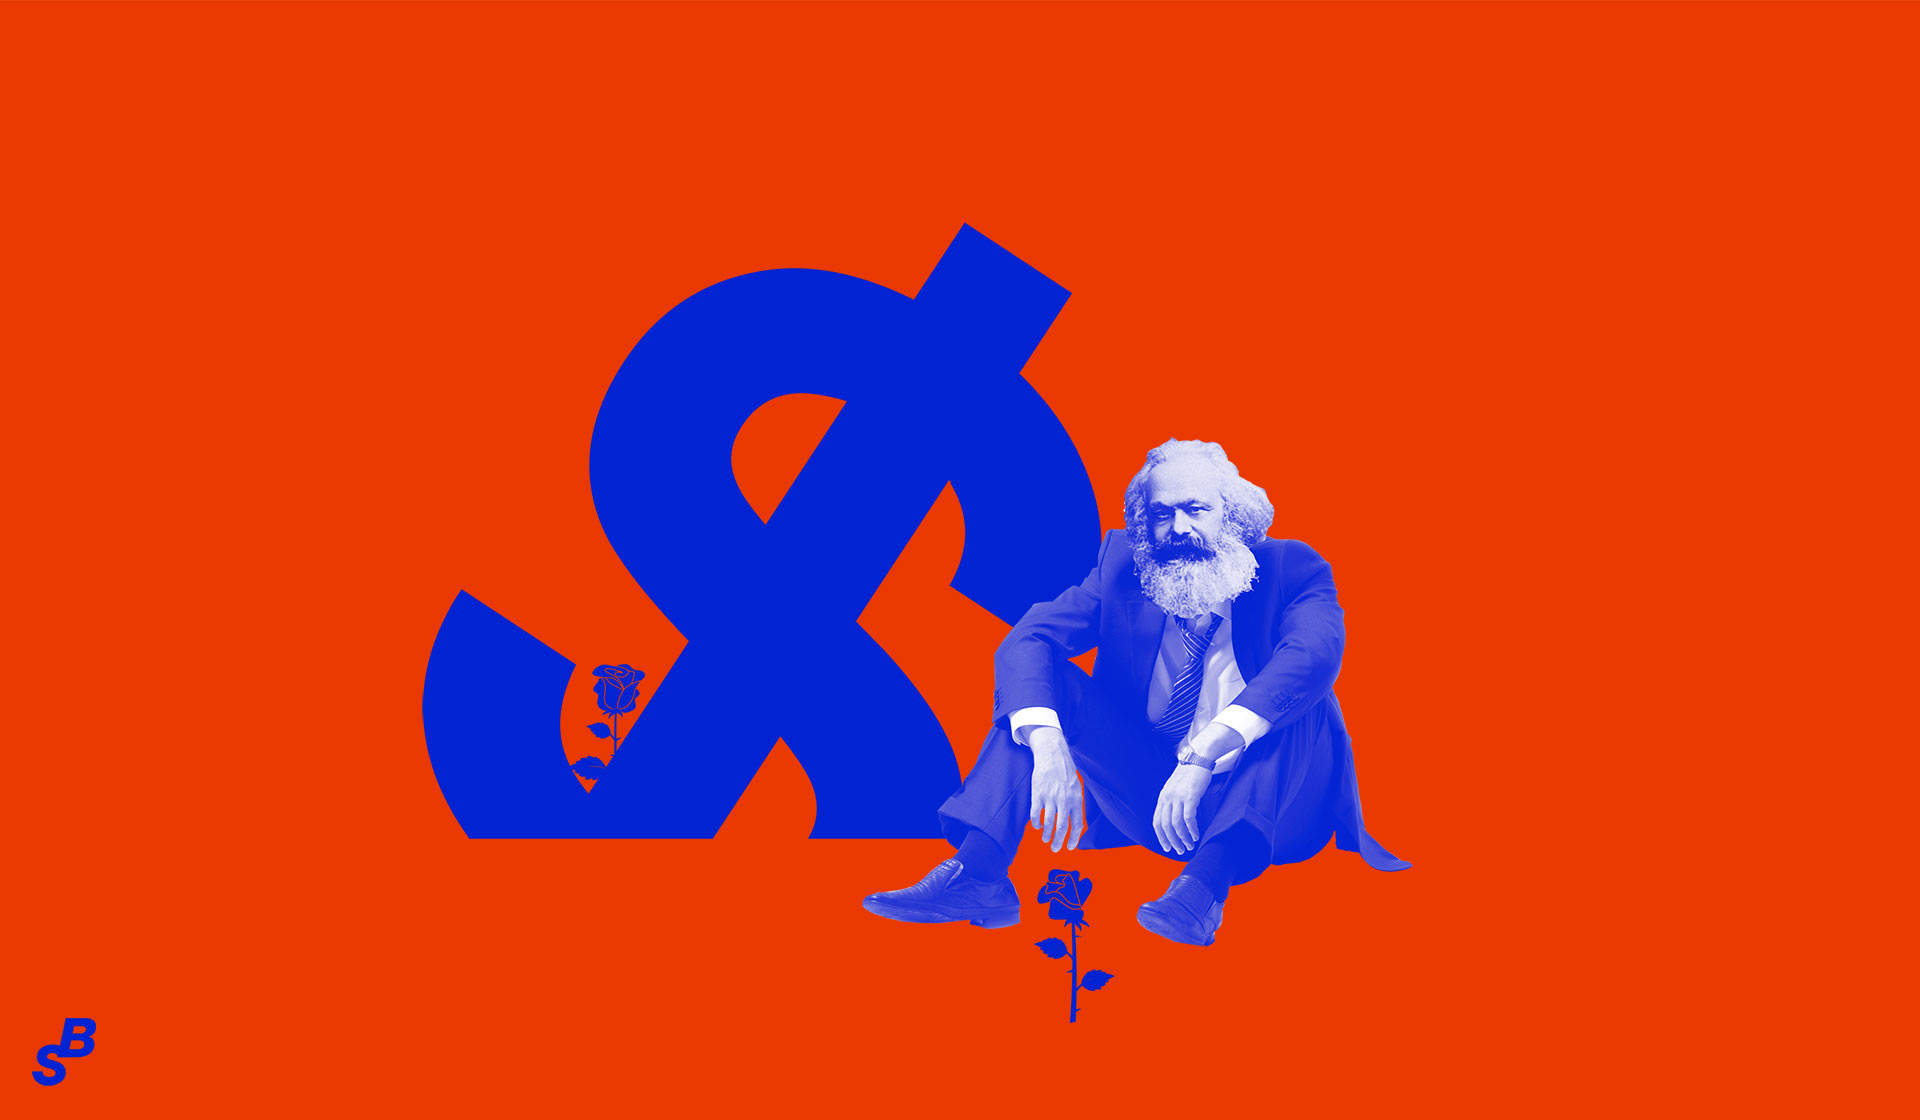 Mario Dzurila Illustration Future Trends Karl Marx Unemployment left wing political